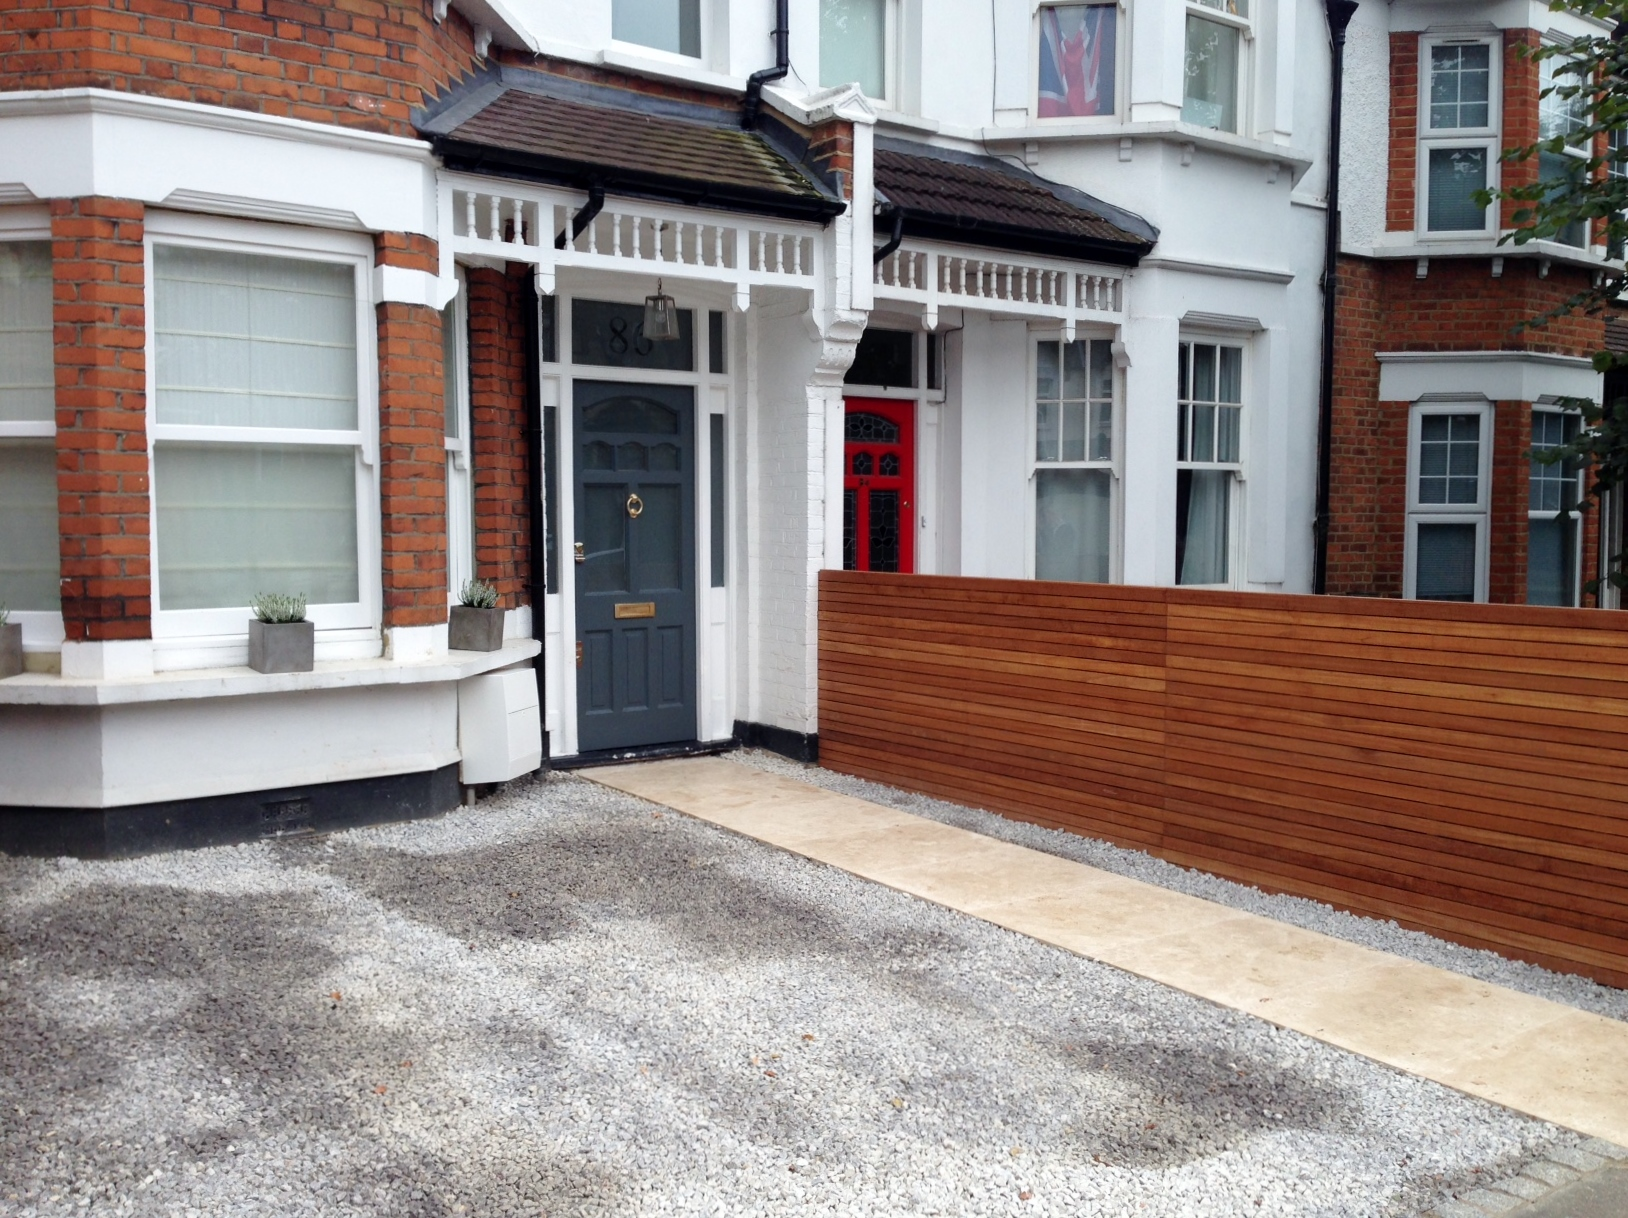 front garden drivewat gravel travertine paving path hardwood privacy screen trellis tooting london (32)